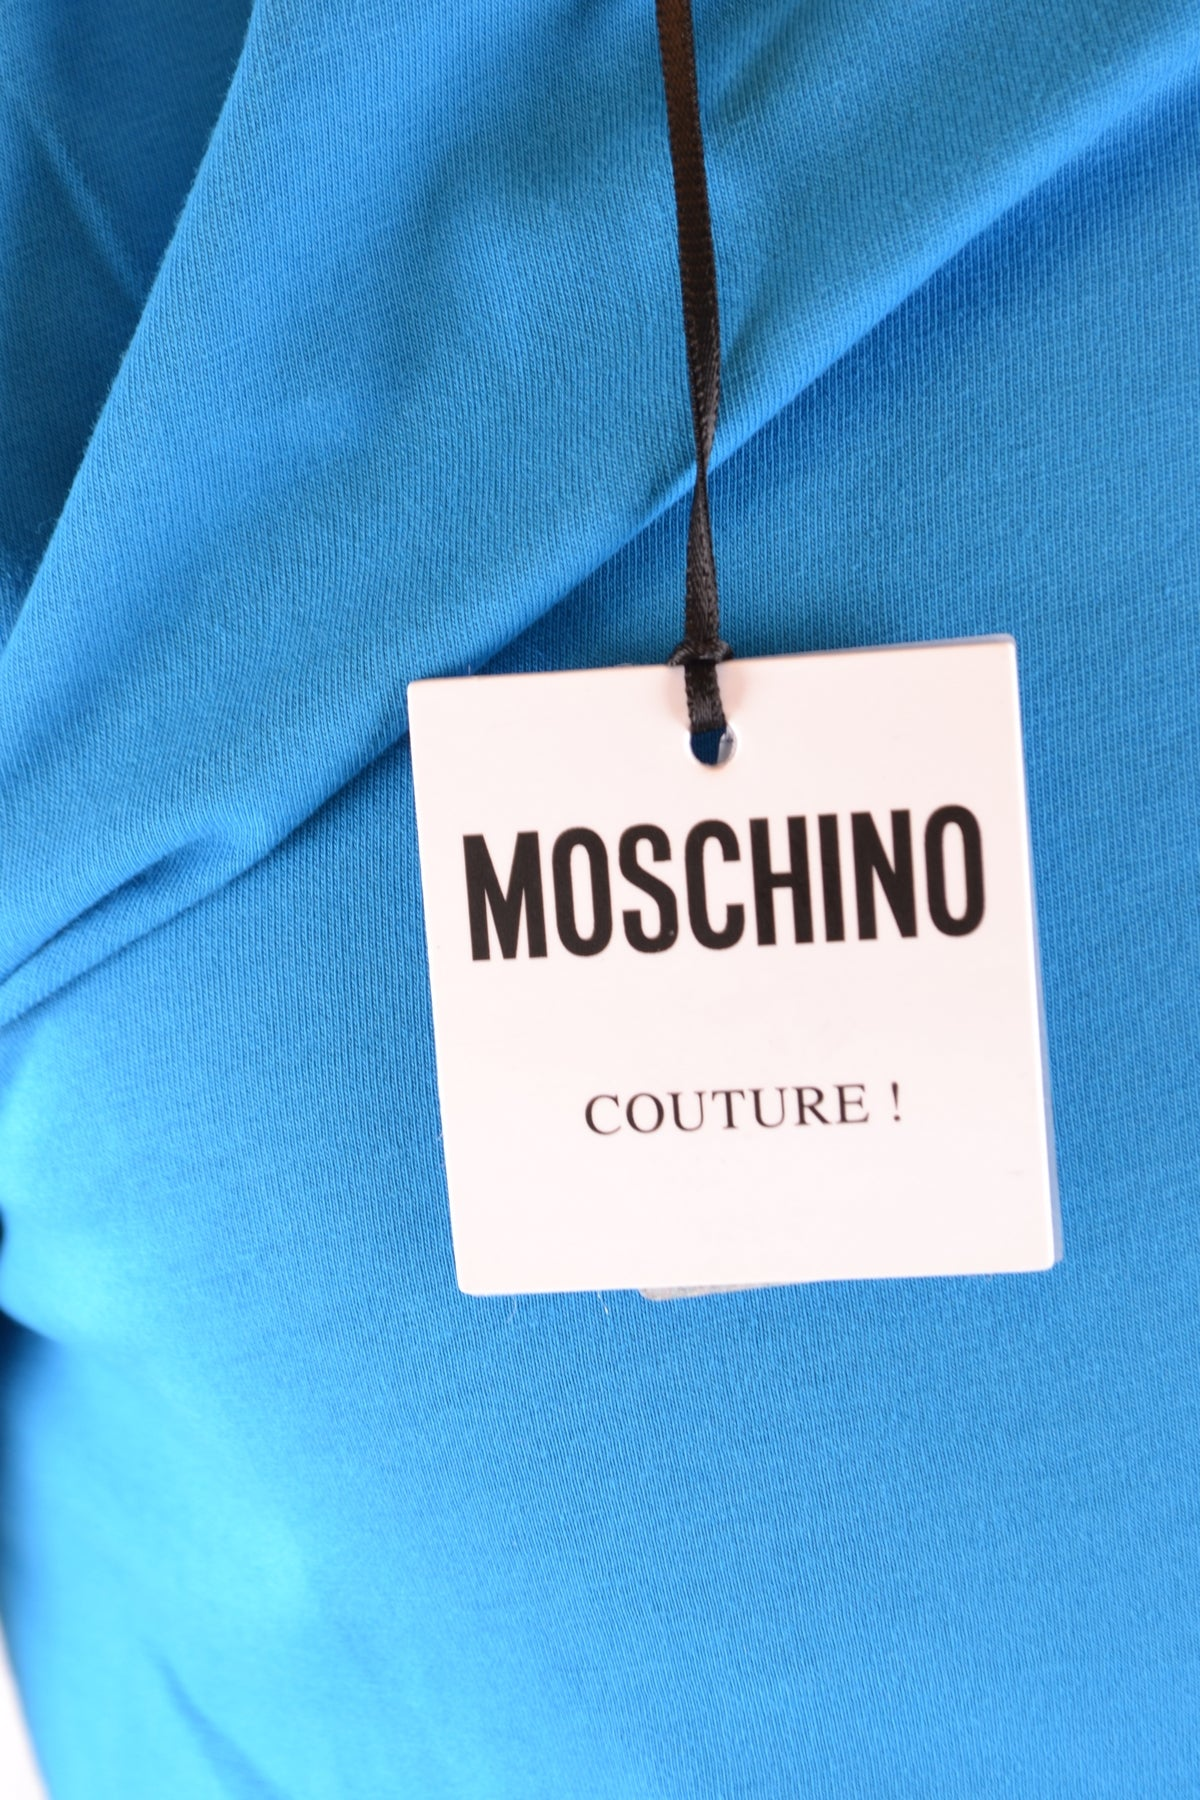 T-Shirt Moschino--Product Details Terms: New With LabelYear: 2019Main Color: BlueGender: ManMade In: PortugalManufacturer Part Number: Za0719 0240 1317Size: ItSeason: Spring / SummerClothing Type: T-ShirtComposition: Cotton 100%-Keyomi-Sook